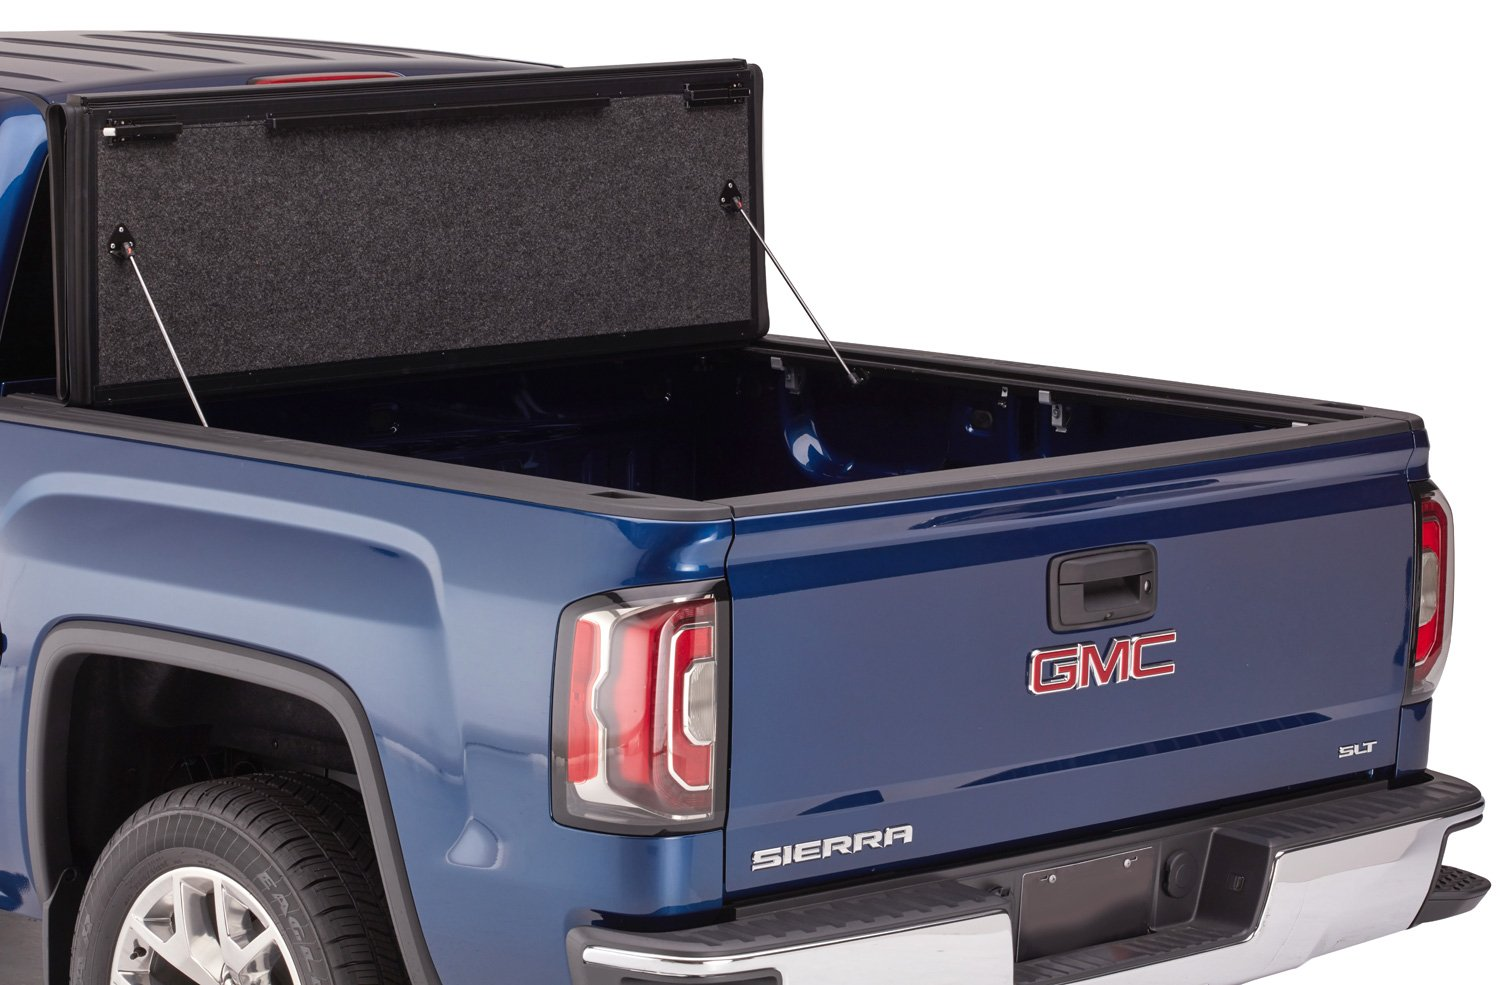 cover and snowboard basket tonneau undercover hinged ridgelander bike defender carrier racks with bed